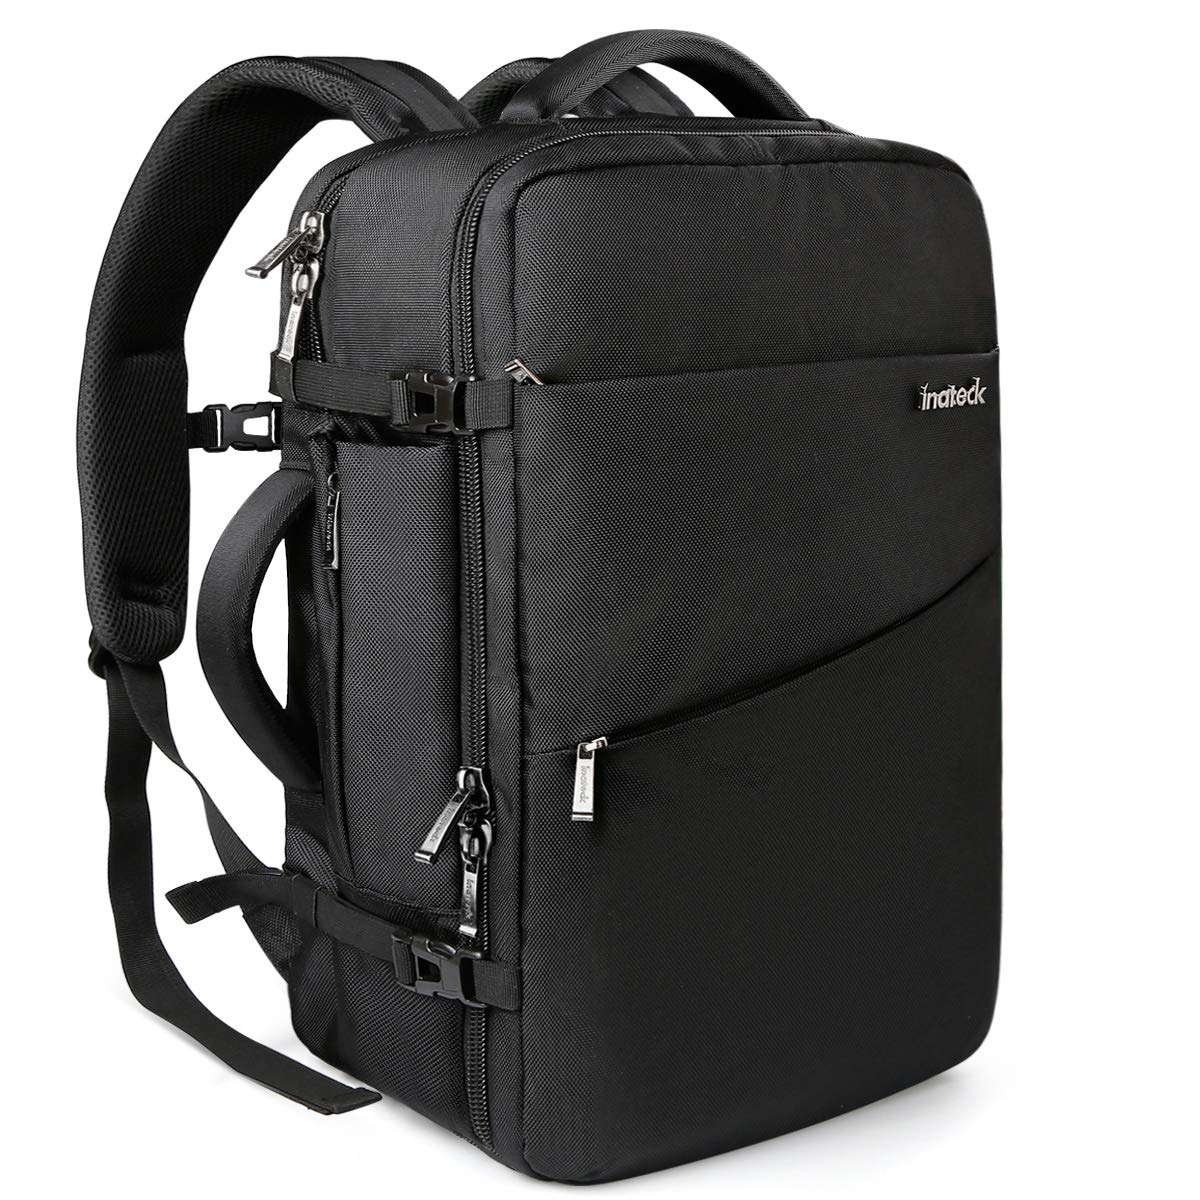 Inateck Travel Carry-on 40 litre Laptop Backpack